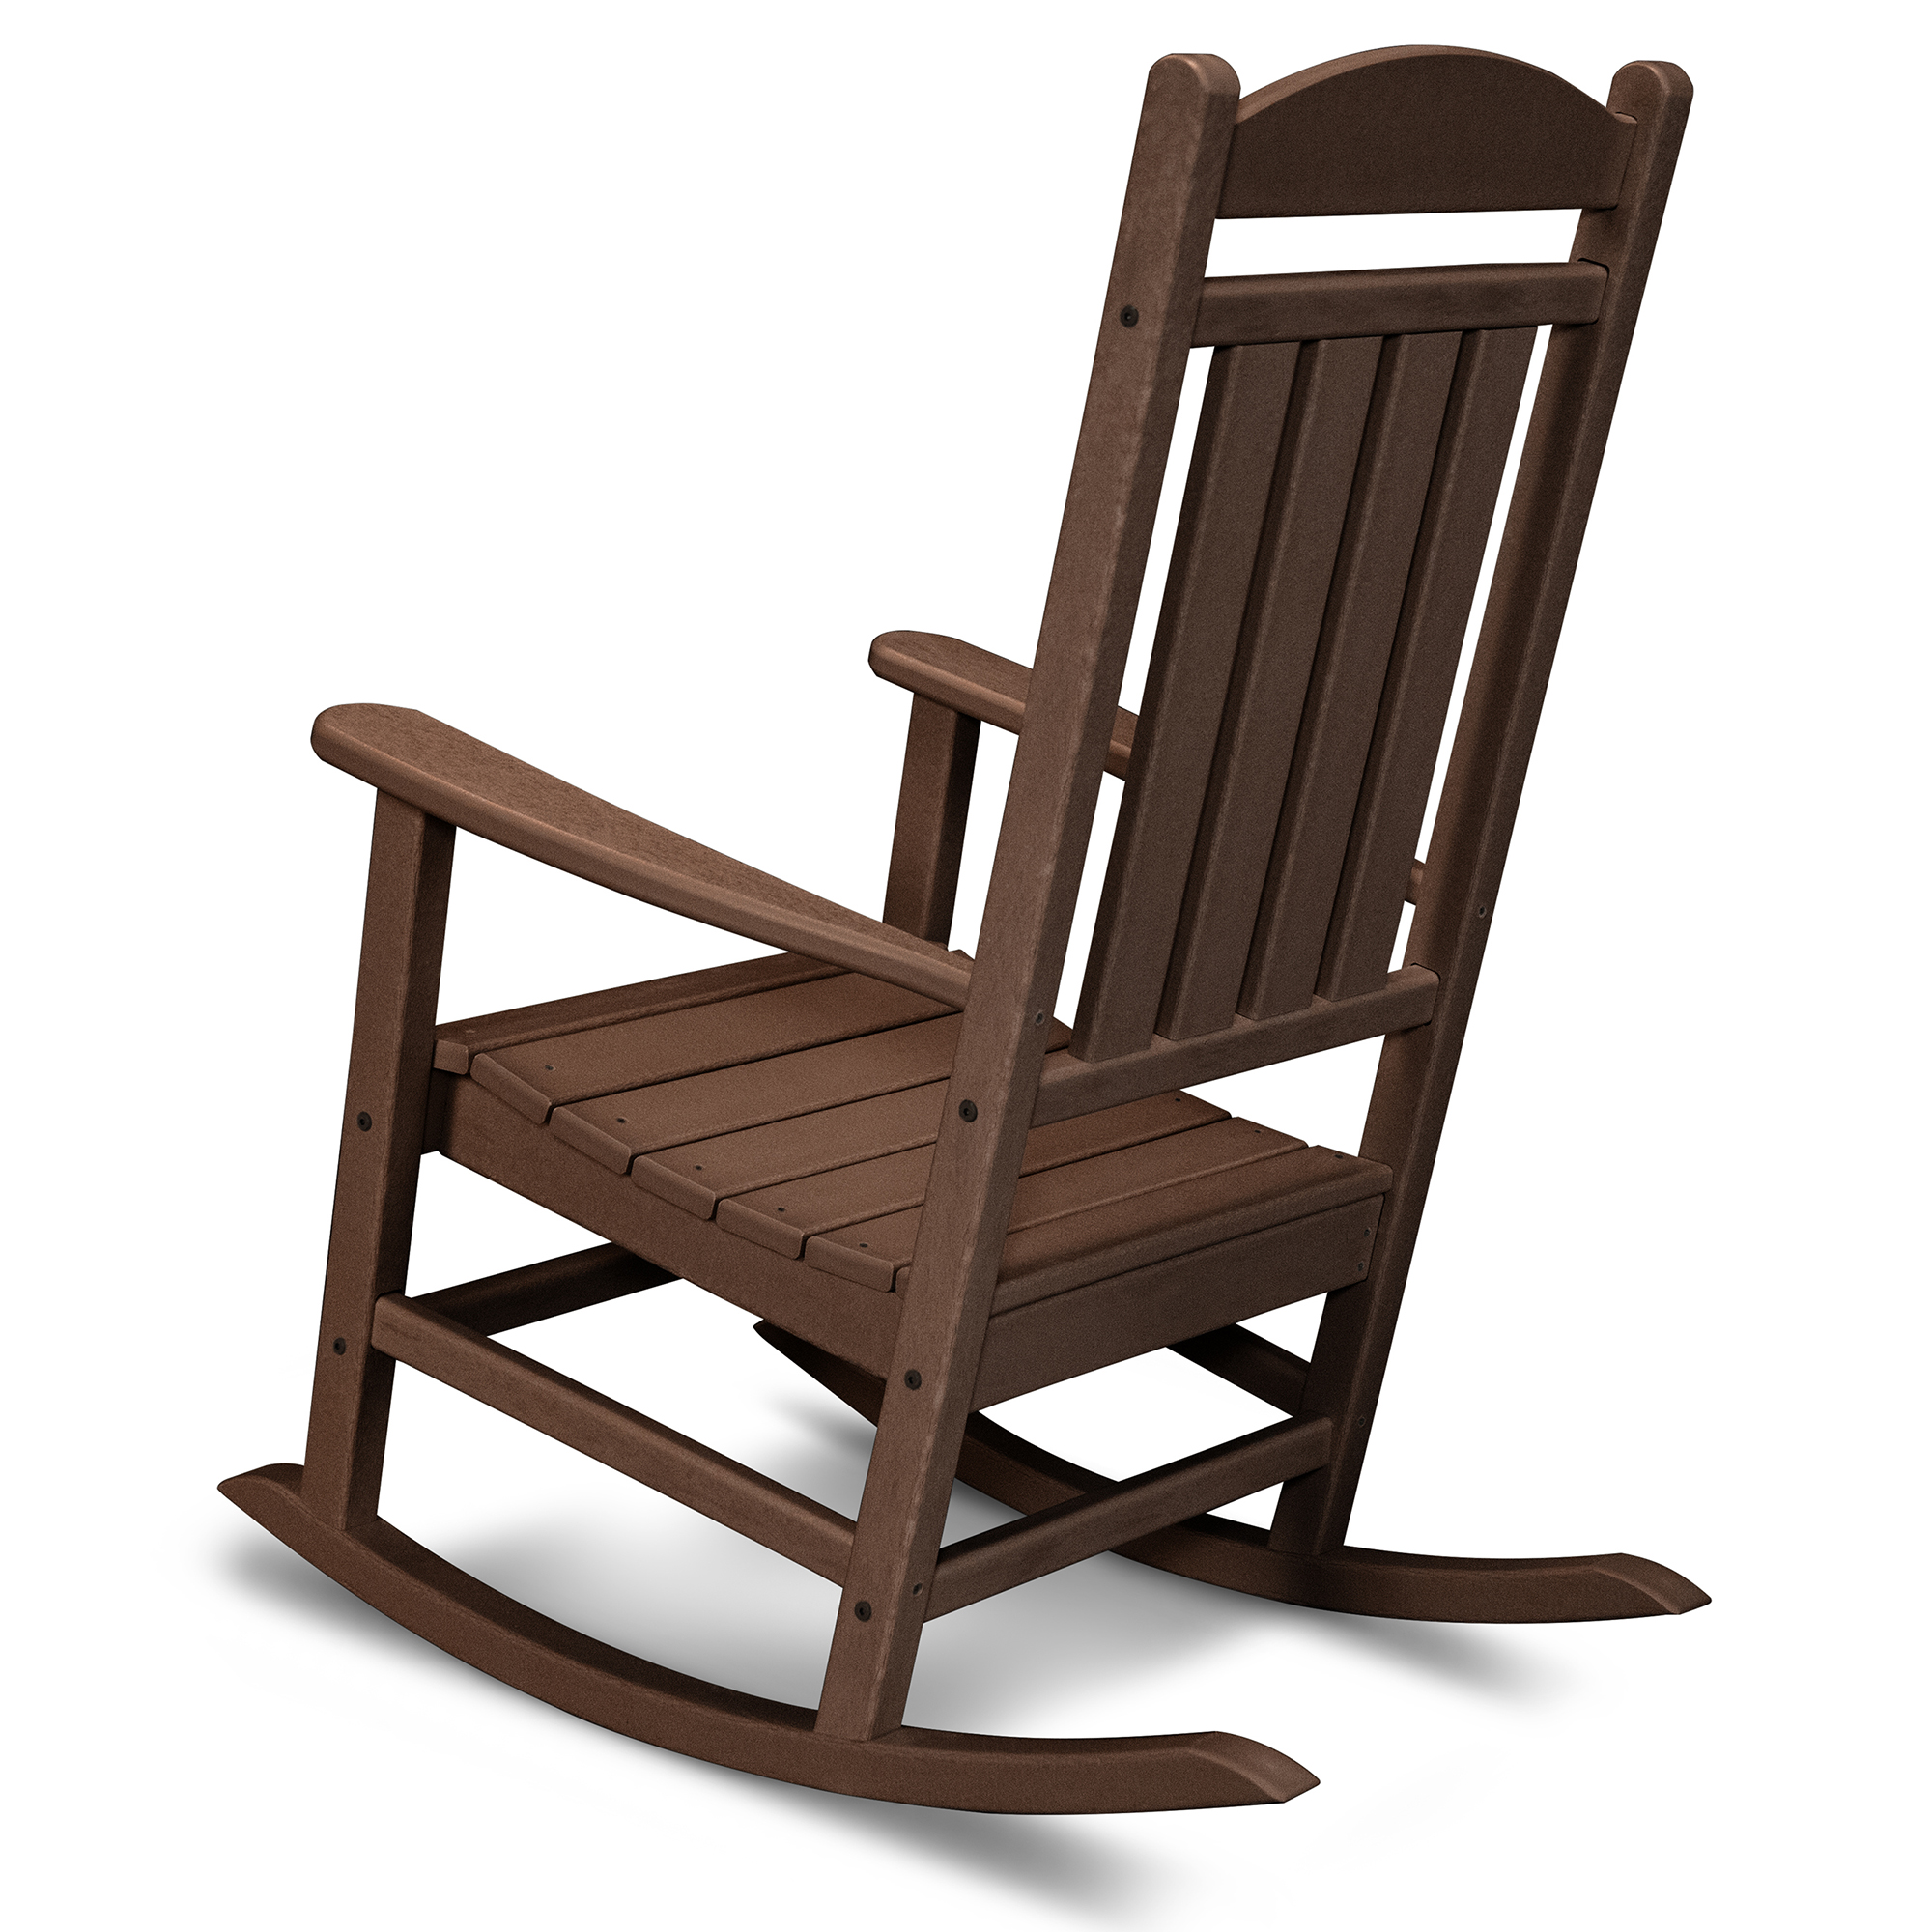 polywood reg allweather rocker home furniture outdoor furniture rocking chairs cracker barrel old country store cracker barrel old